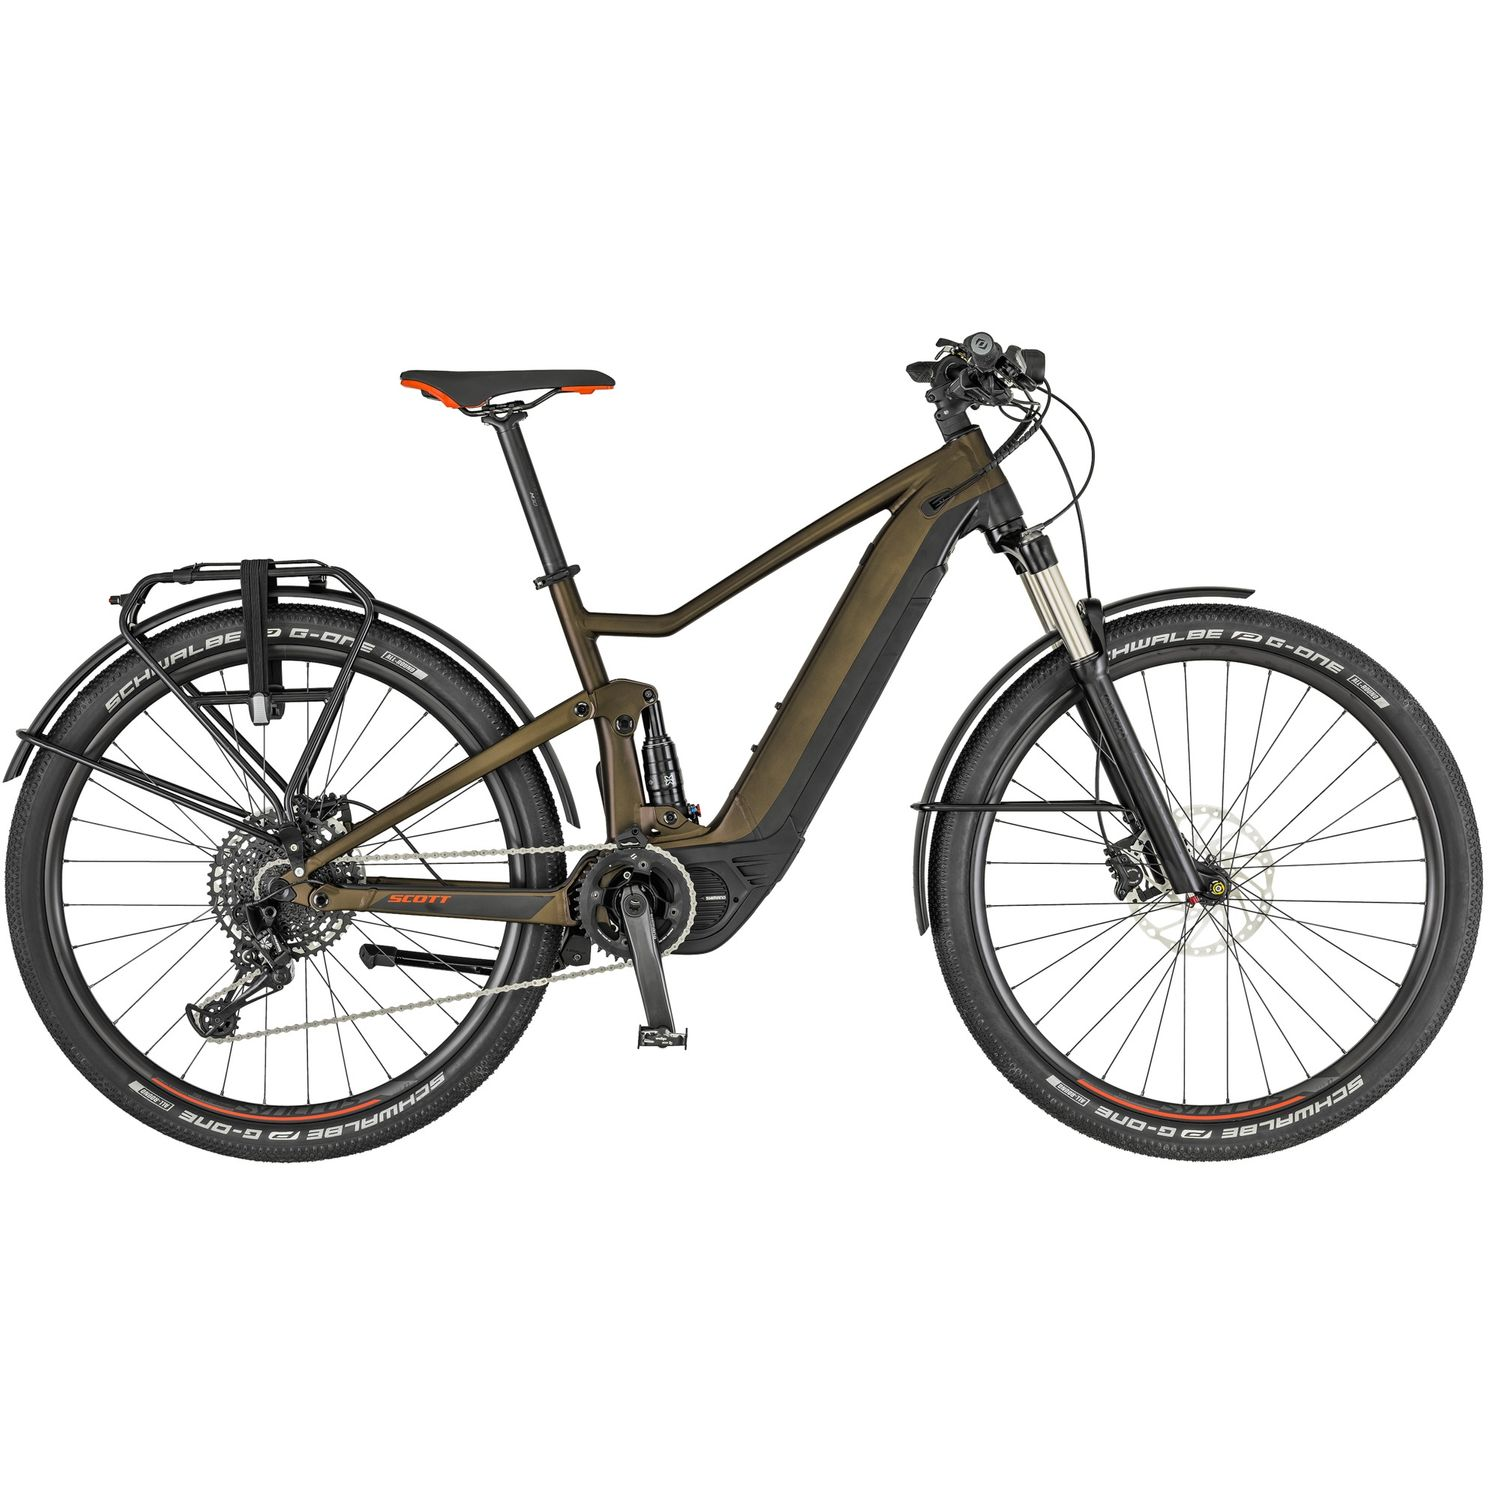 Scott 2019 Axis eRide Evo